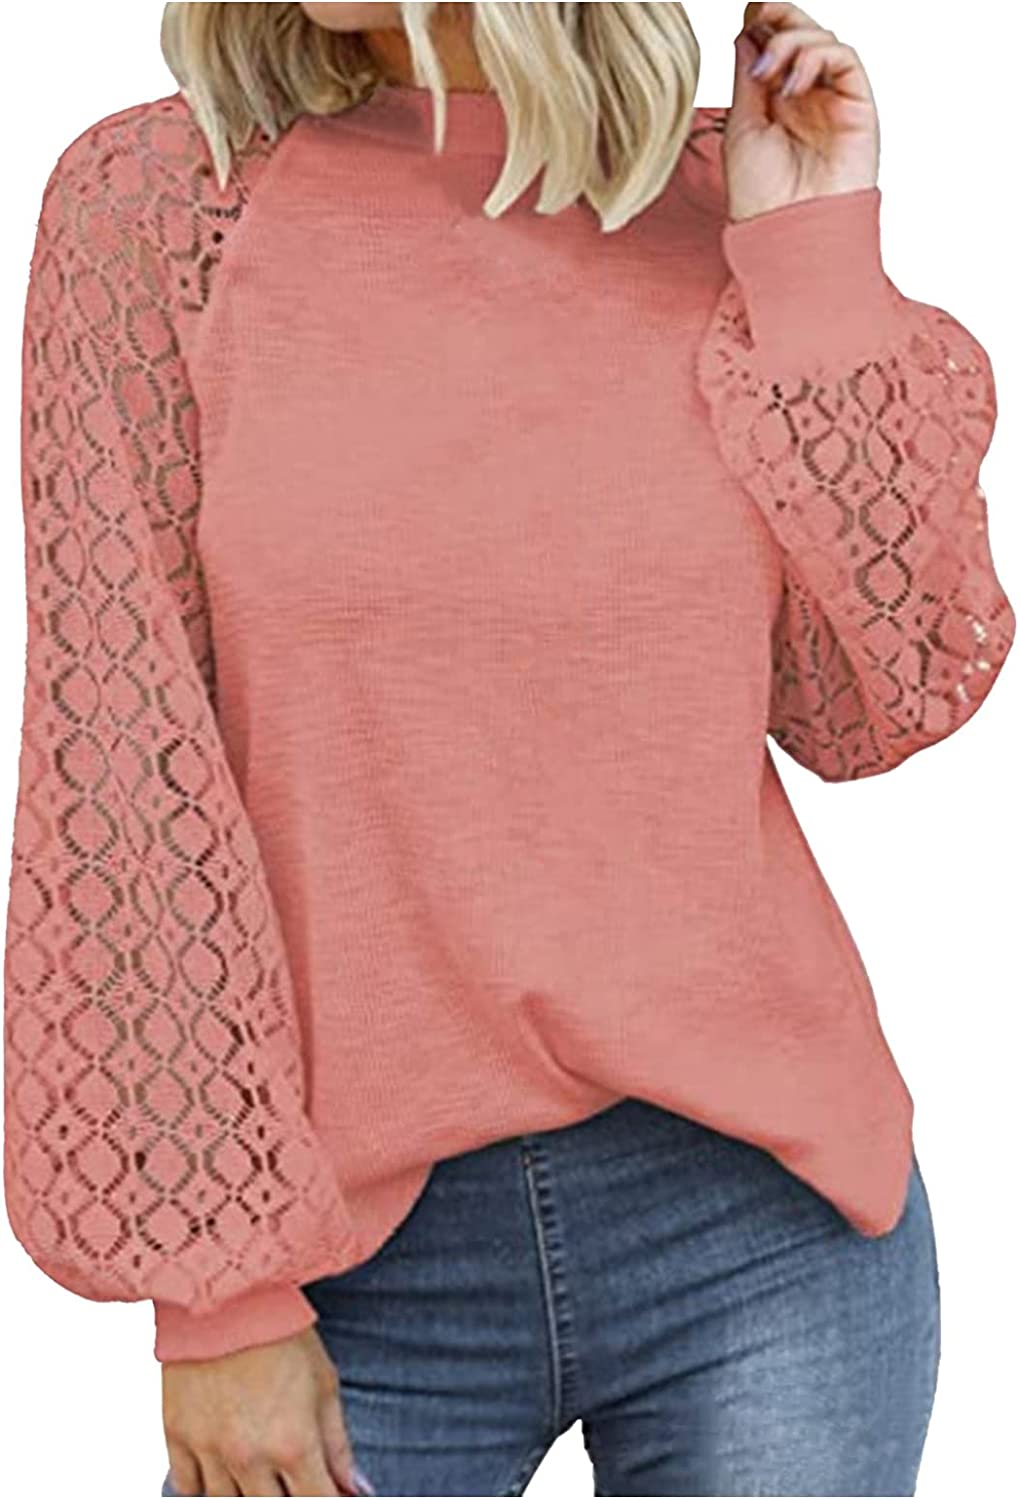 Womens Fashion Sweatshirt Long Sleeve Crew Neck Hollow Out Solid Lantern Sleeve Blouse Elegant Lace Patchwork Shirt Top